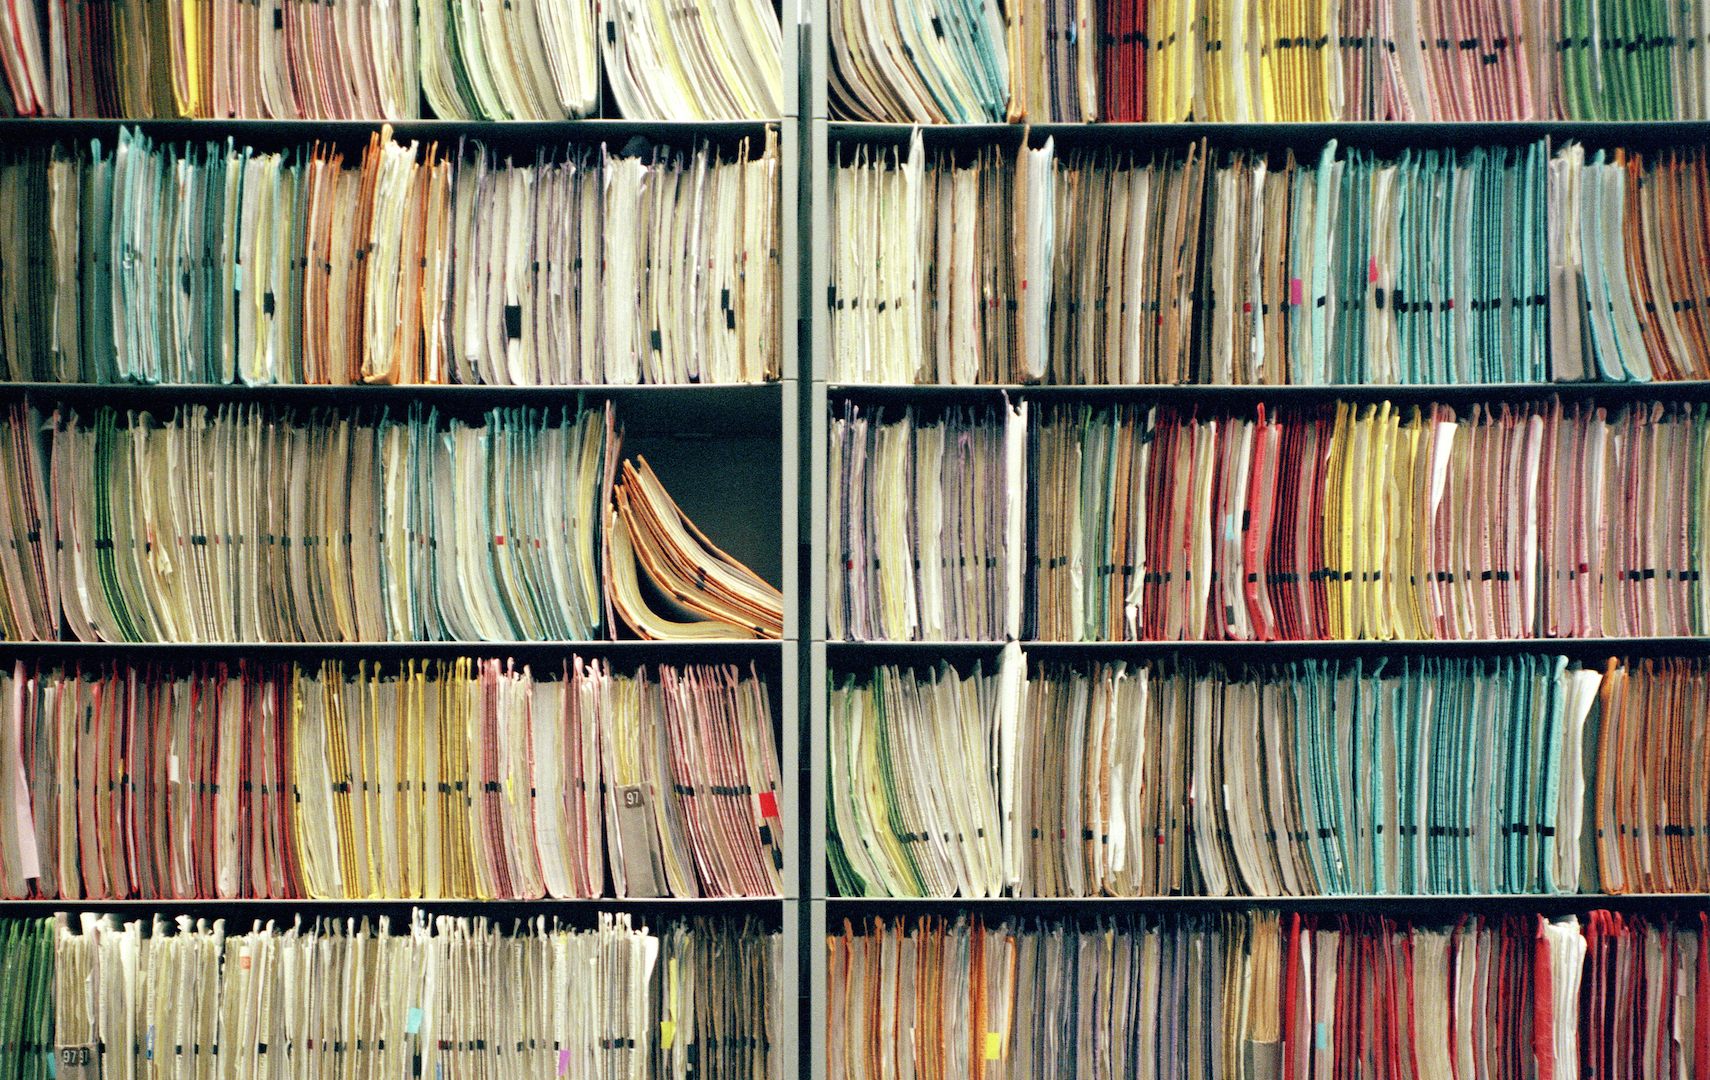 Shelves with medical records and health files